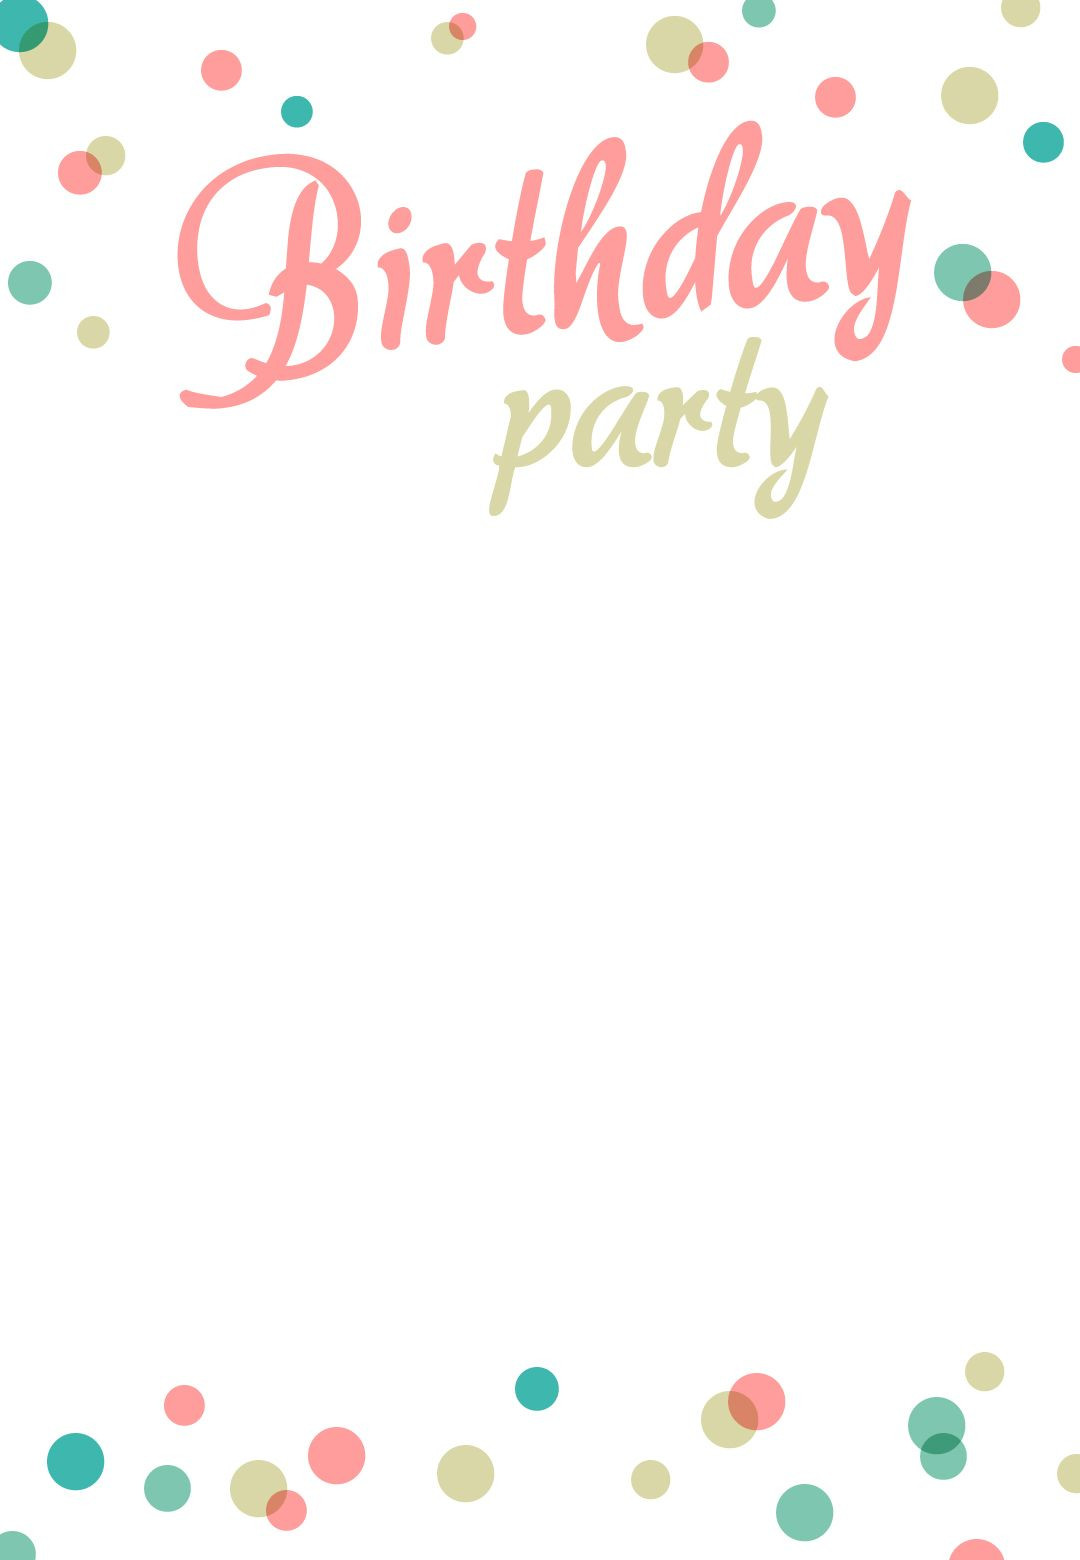 Best ideas about Birthday Party Templates . Save or Pin Birthday Party Invitation Free Printable Now.